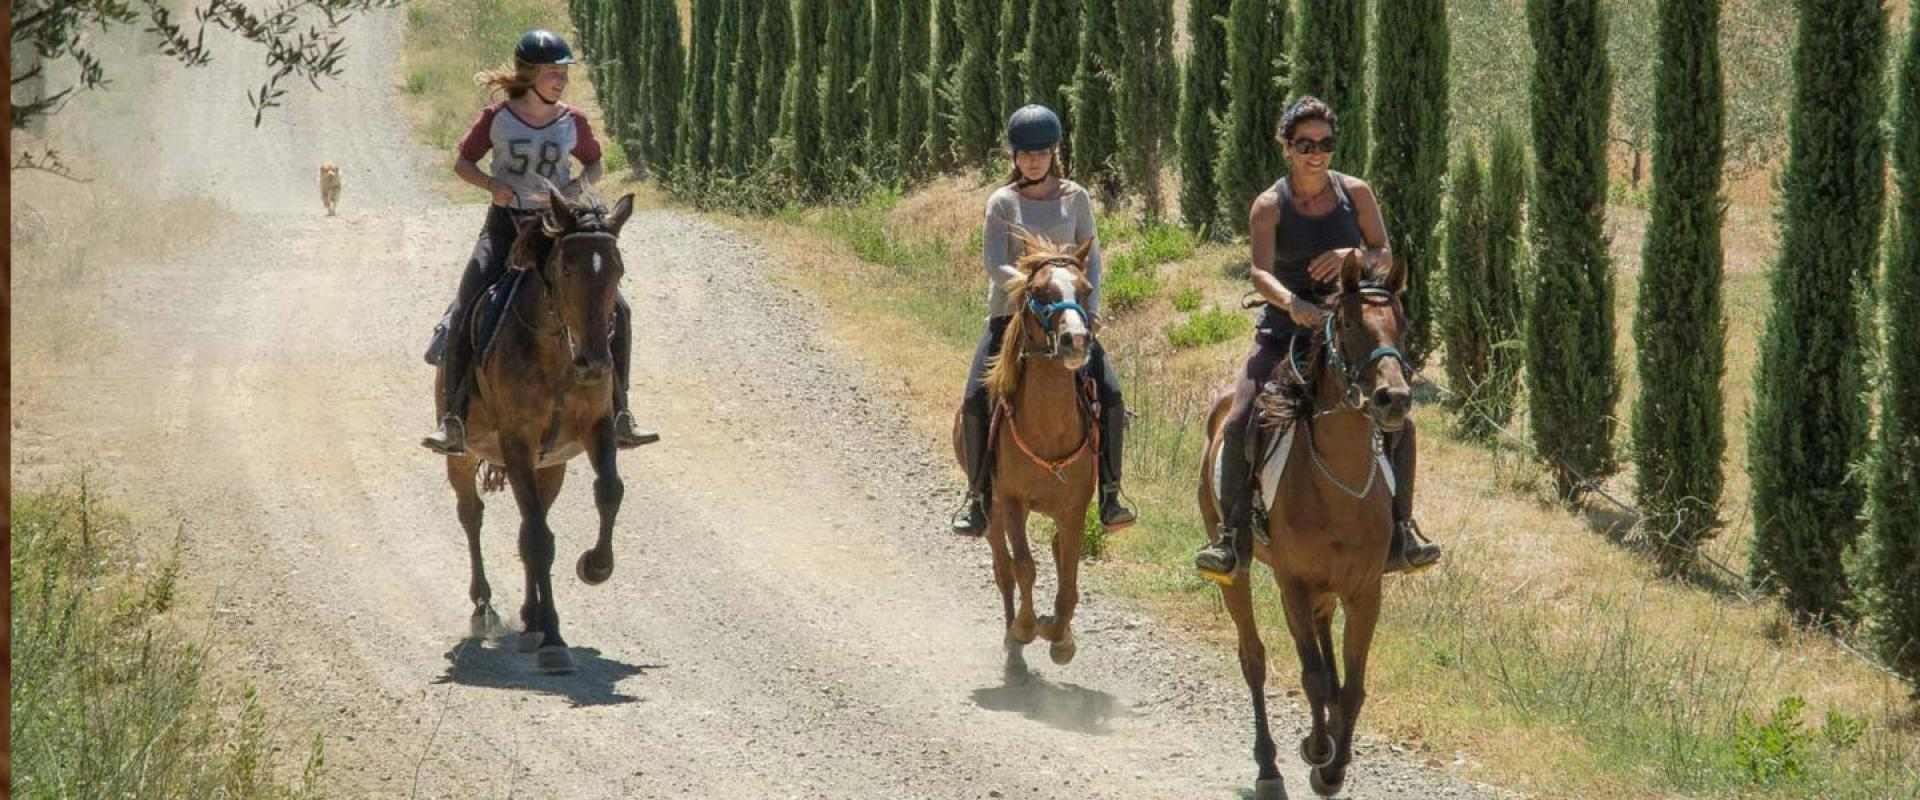 horse riding in Maremma